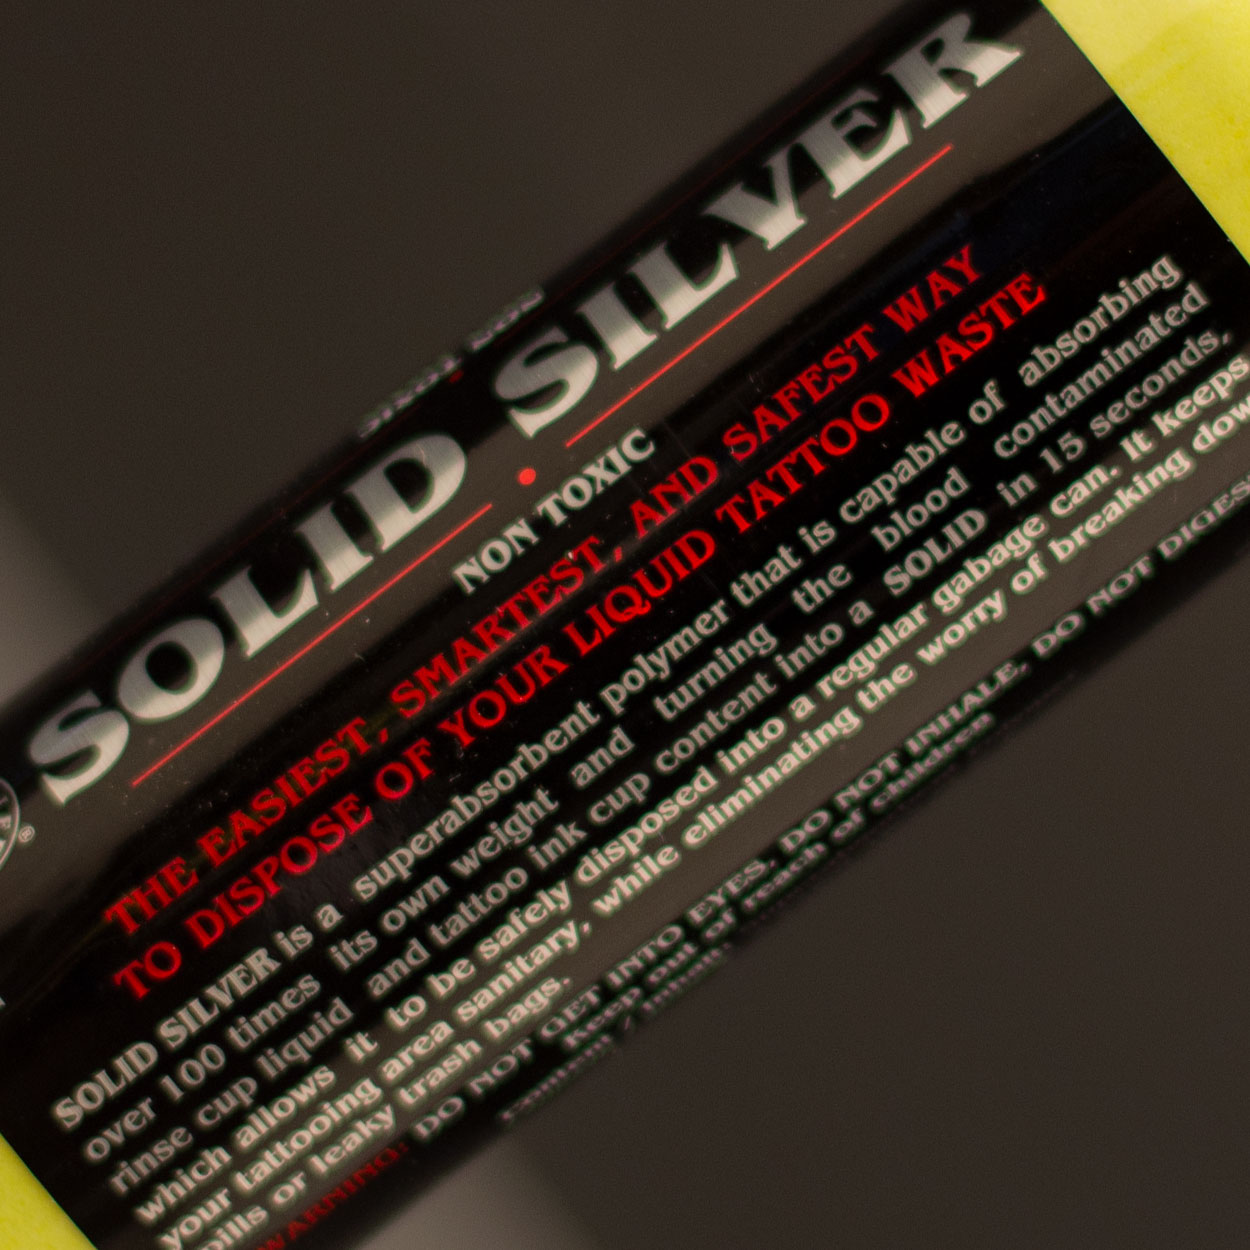 Solid Silver - tattoo waste management - solidifier - rinse cup - 4 oz - super absorbent polymer - Killer Silver